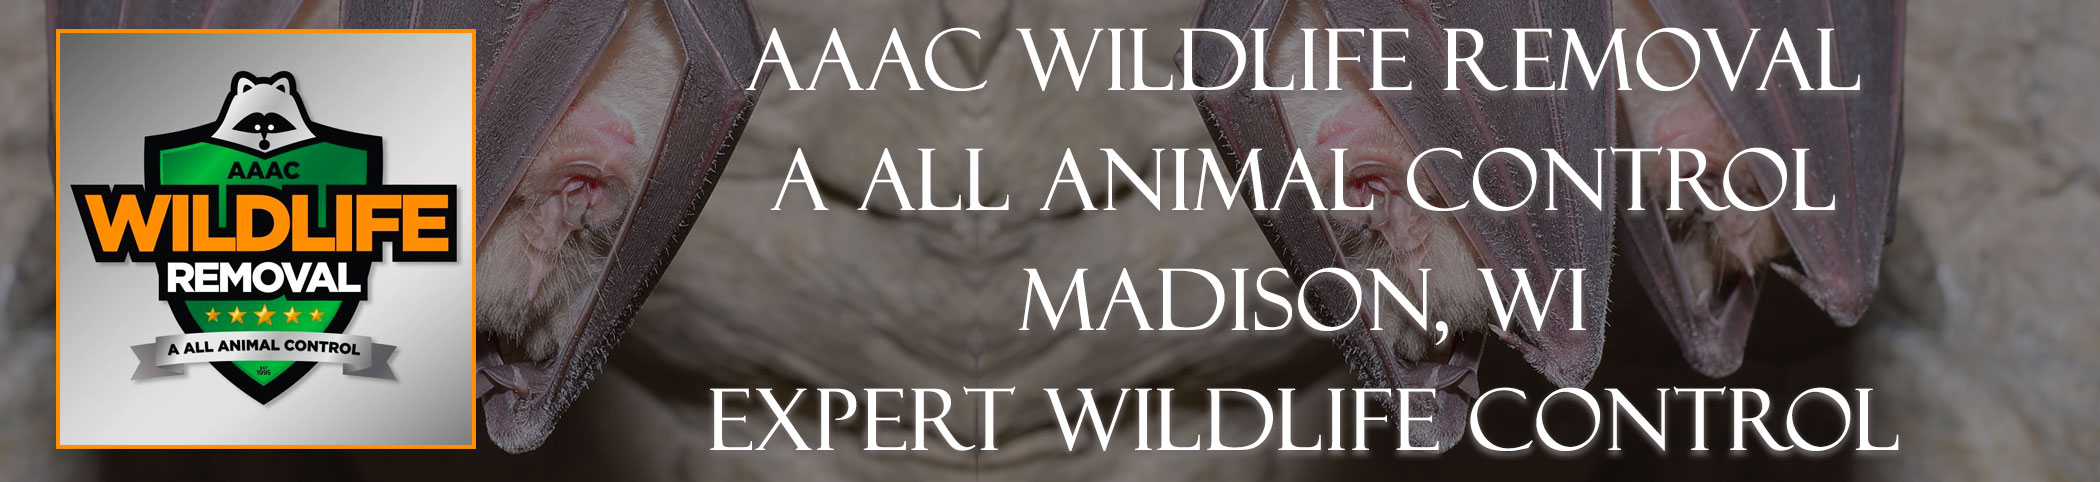 aaac-wildlife-removal-madison-wisconsin